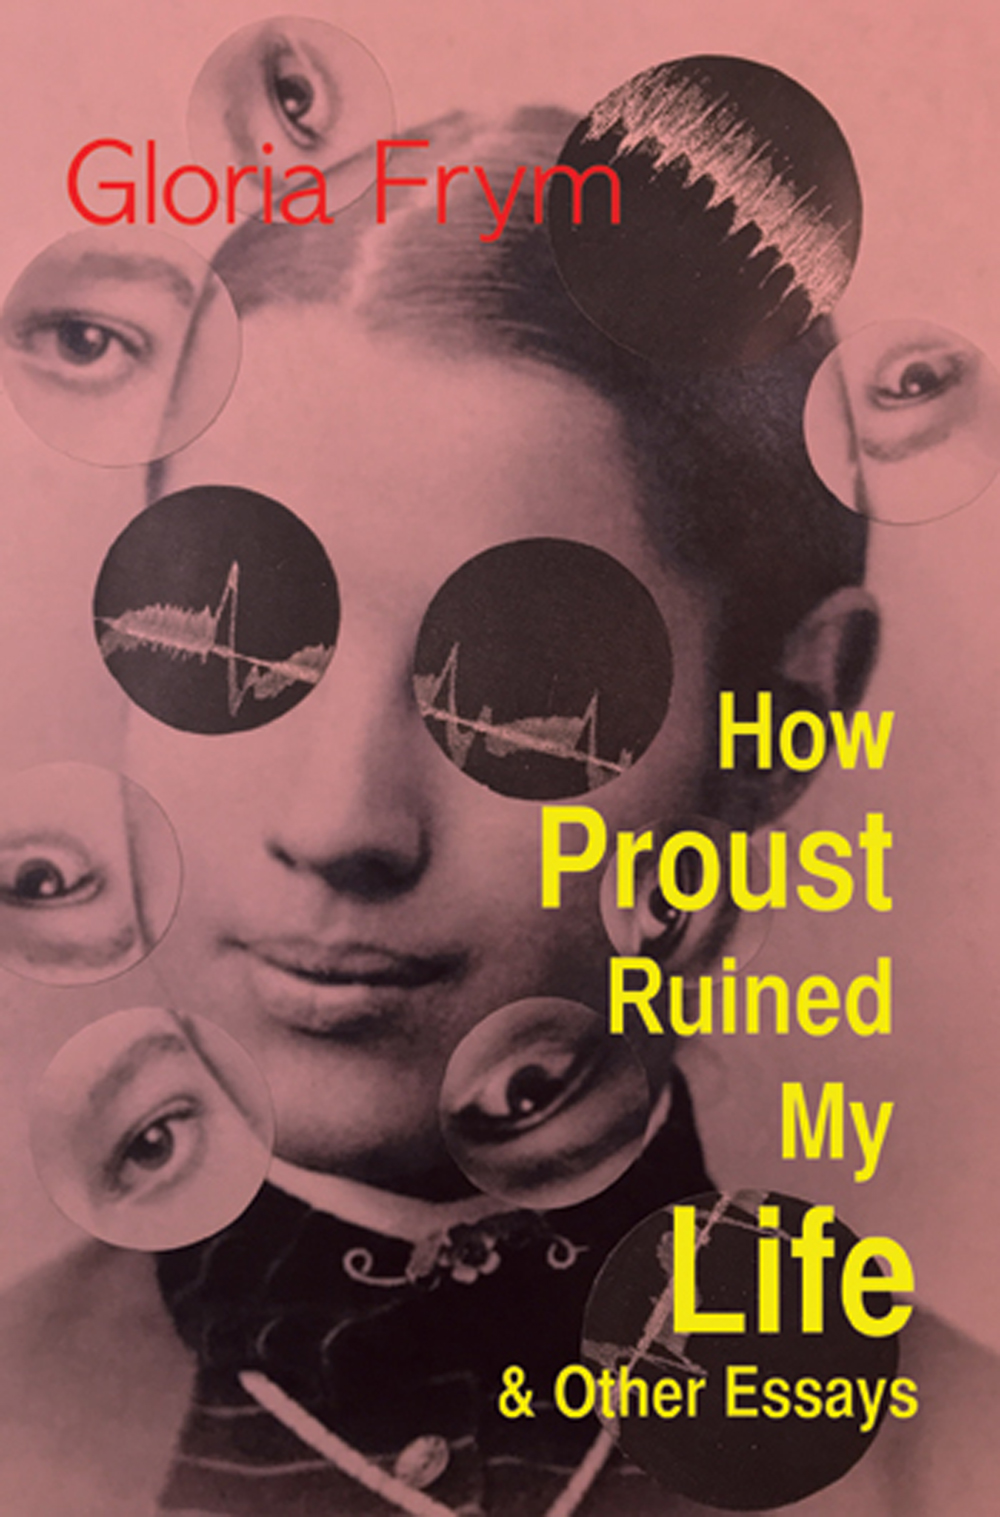 How Proust Ruined My Life & Other Essays